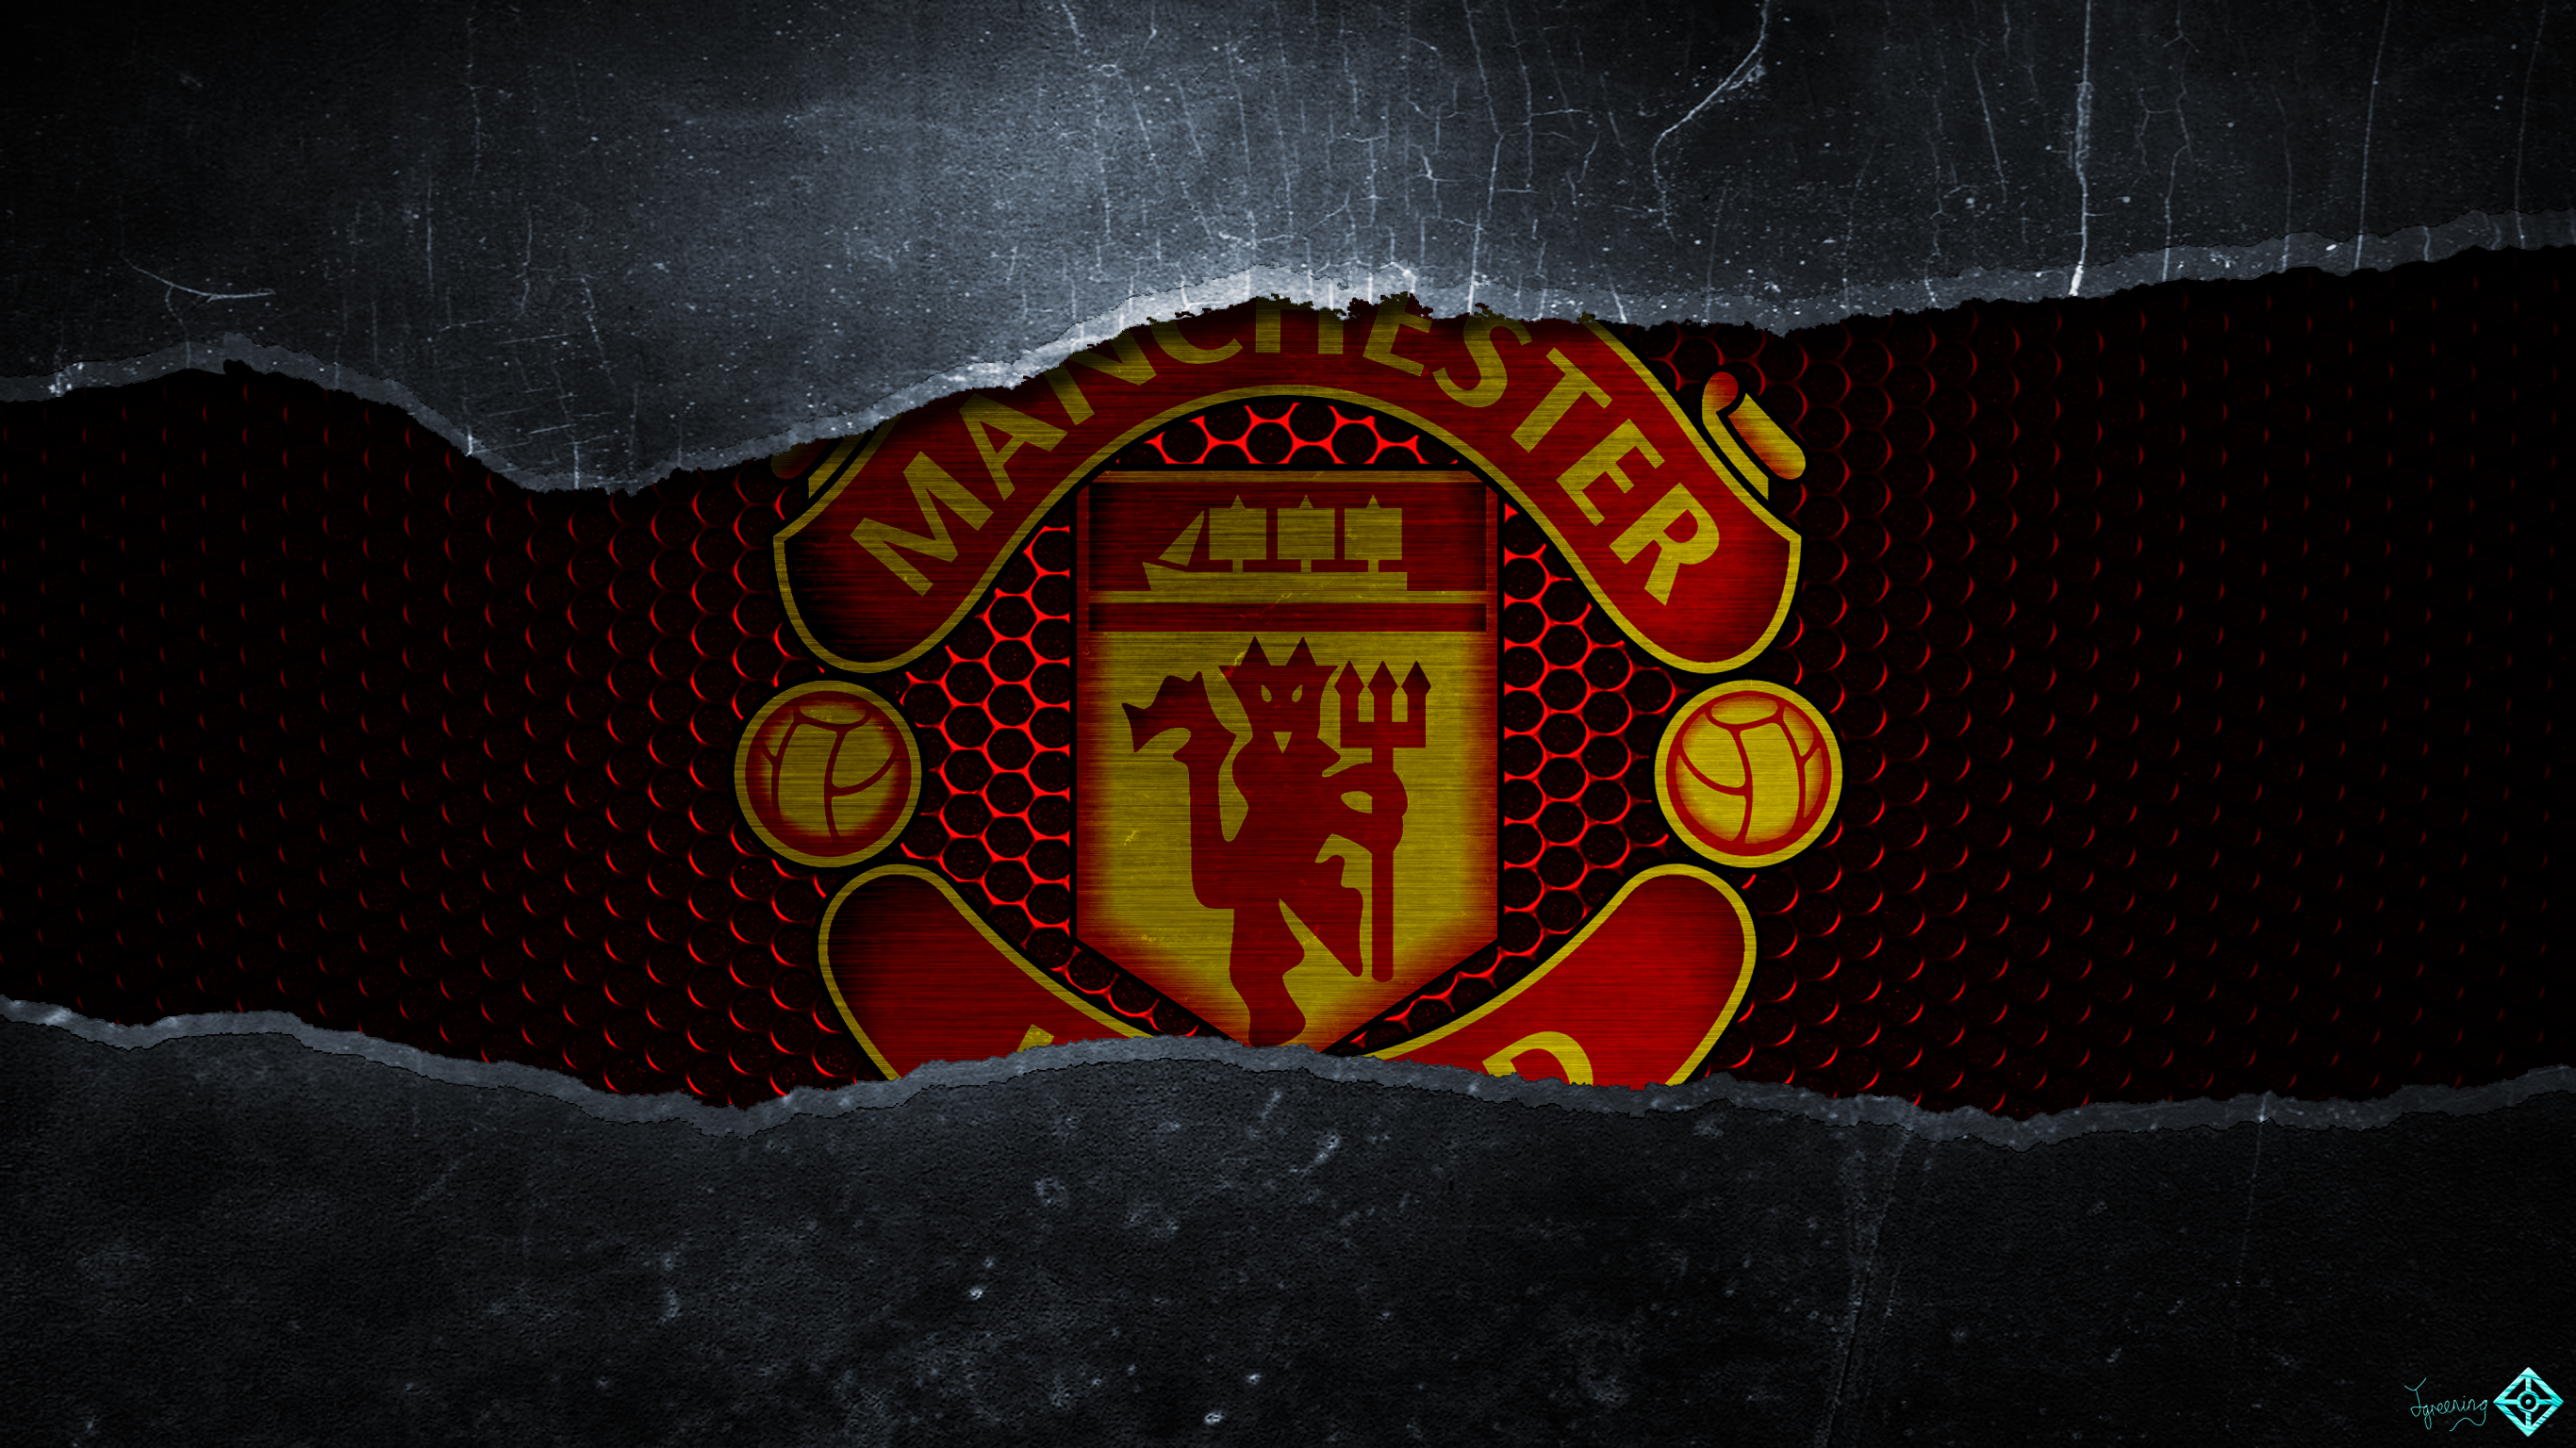 manchester united wallpapers hdimage - photo #16